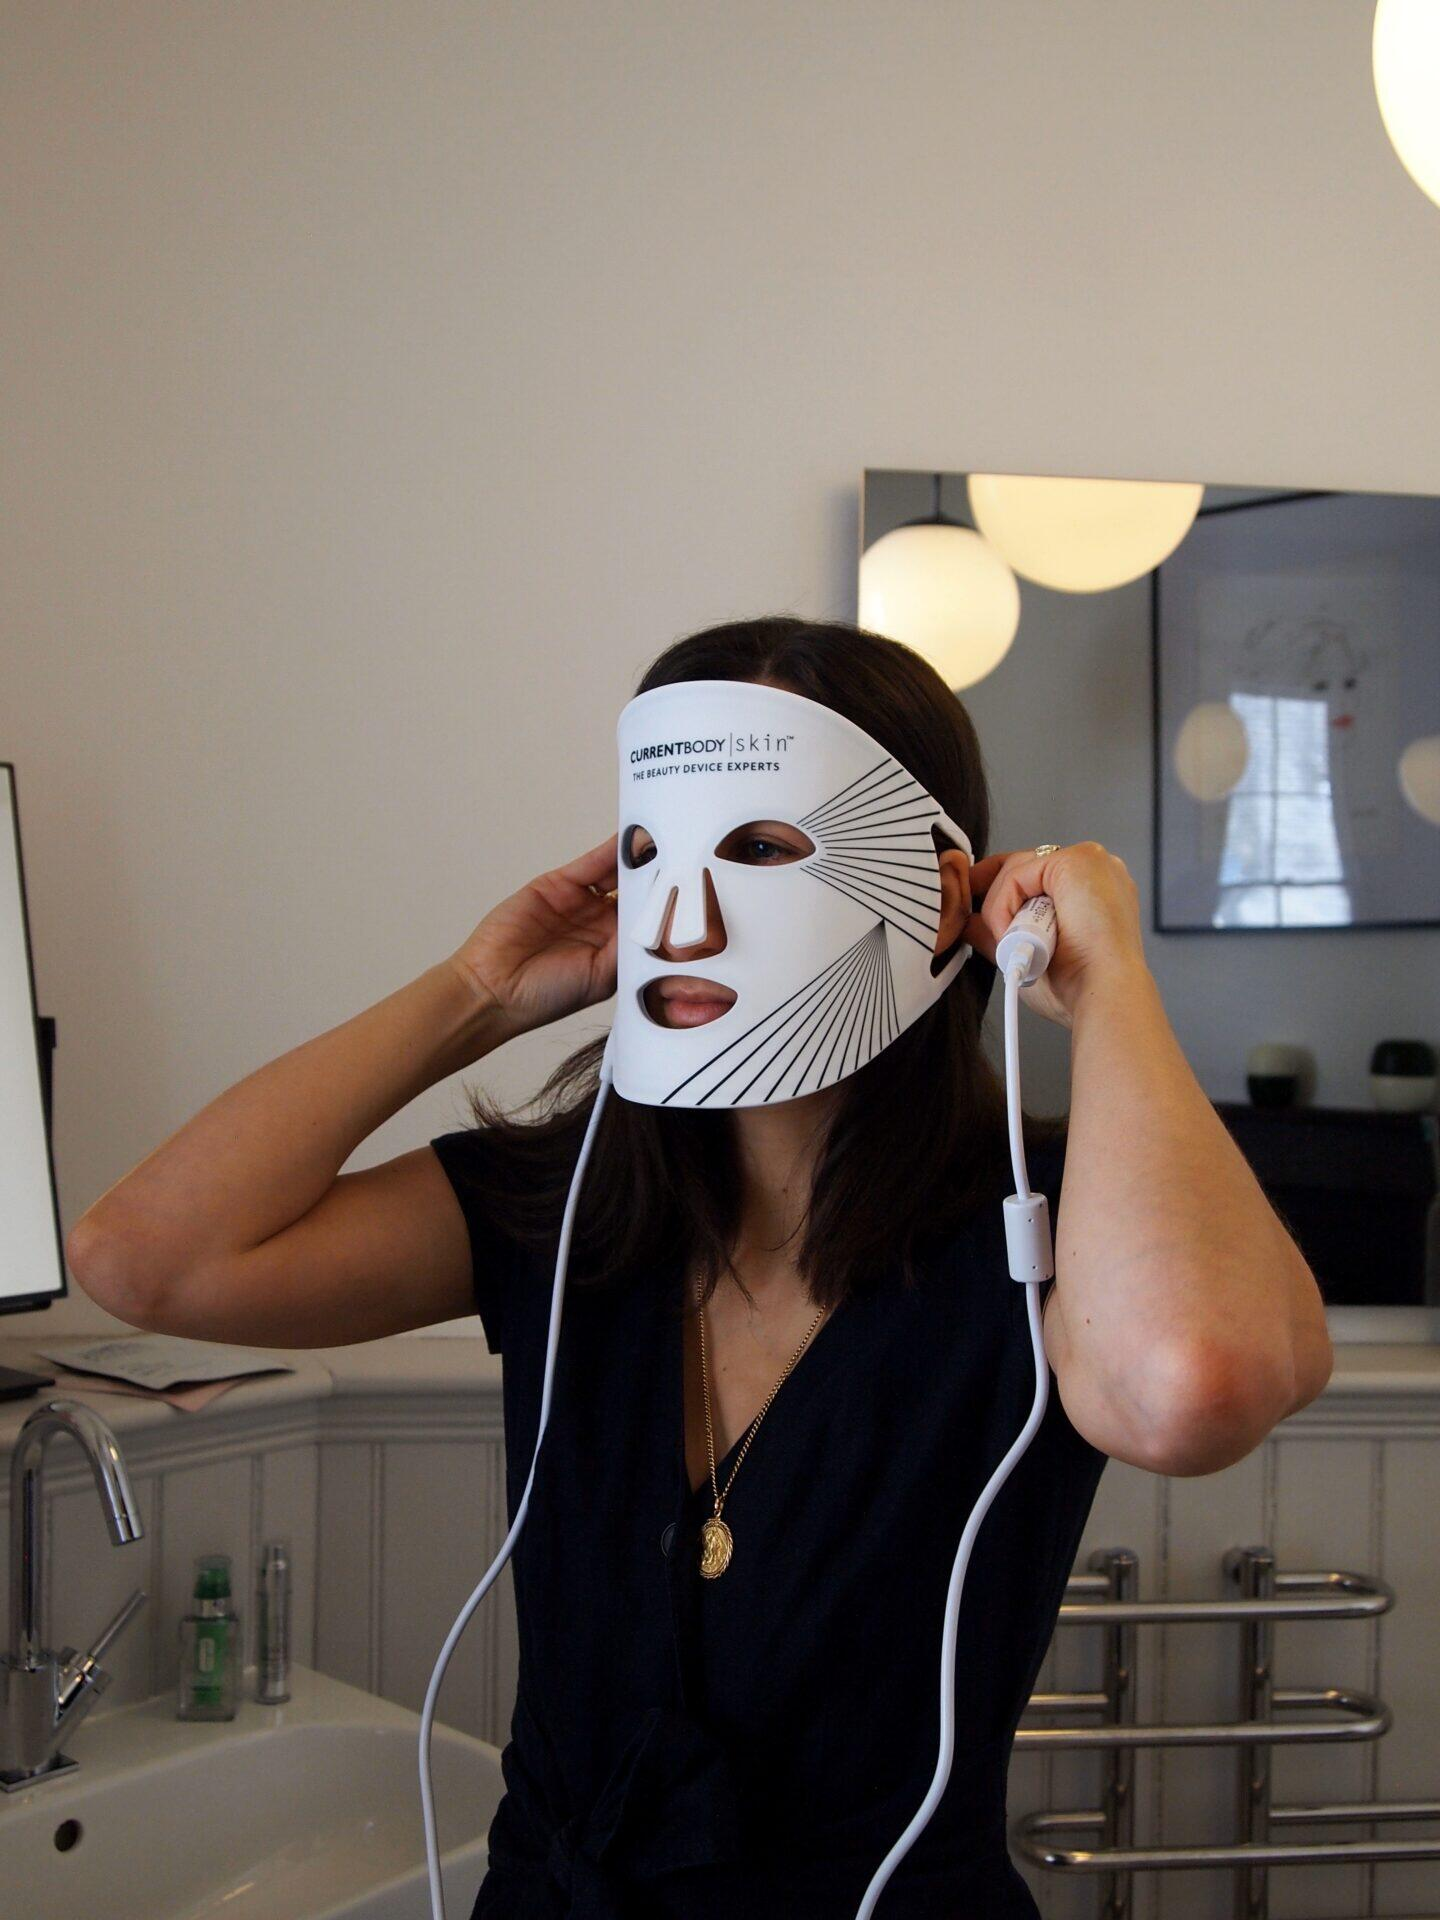 current body skin led lgiht therapy mask